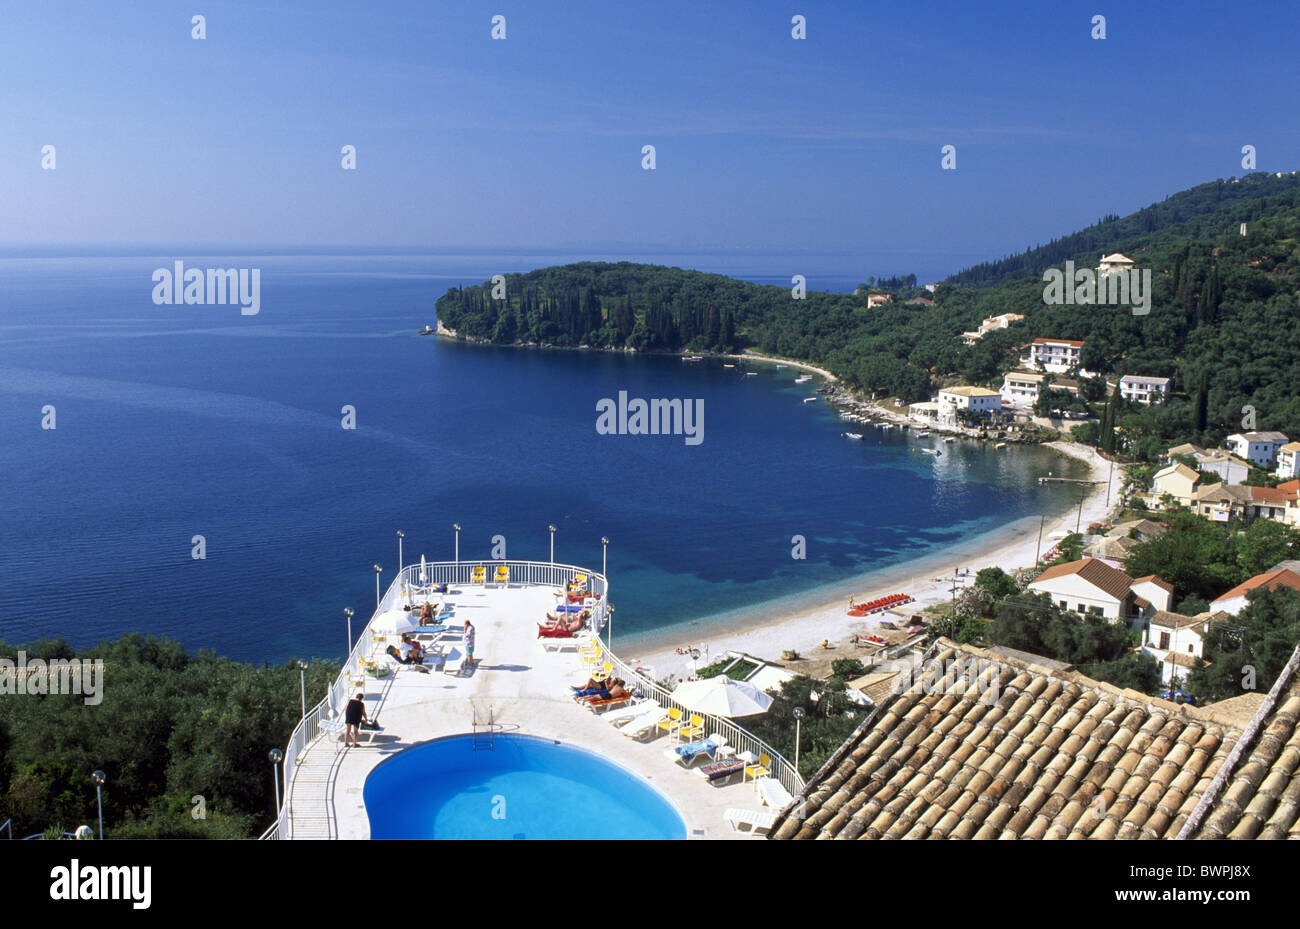 Greece europe corfu island kalami beach mediterranean sea view coast europe hotel island ionic islands lyin